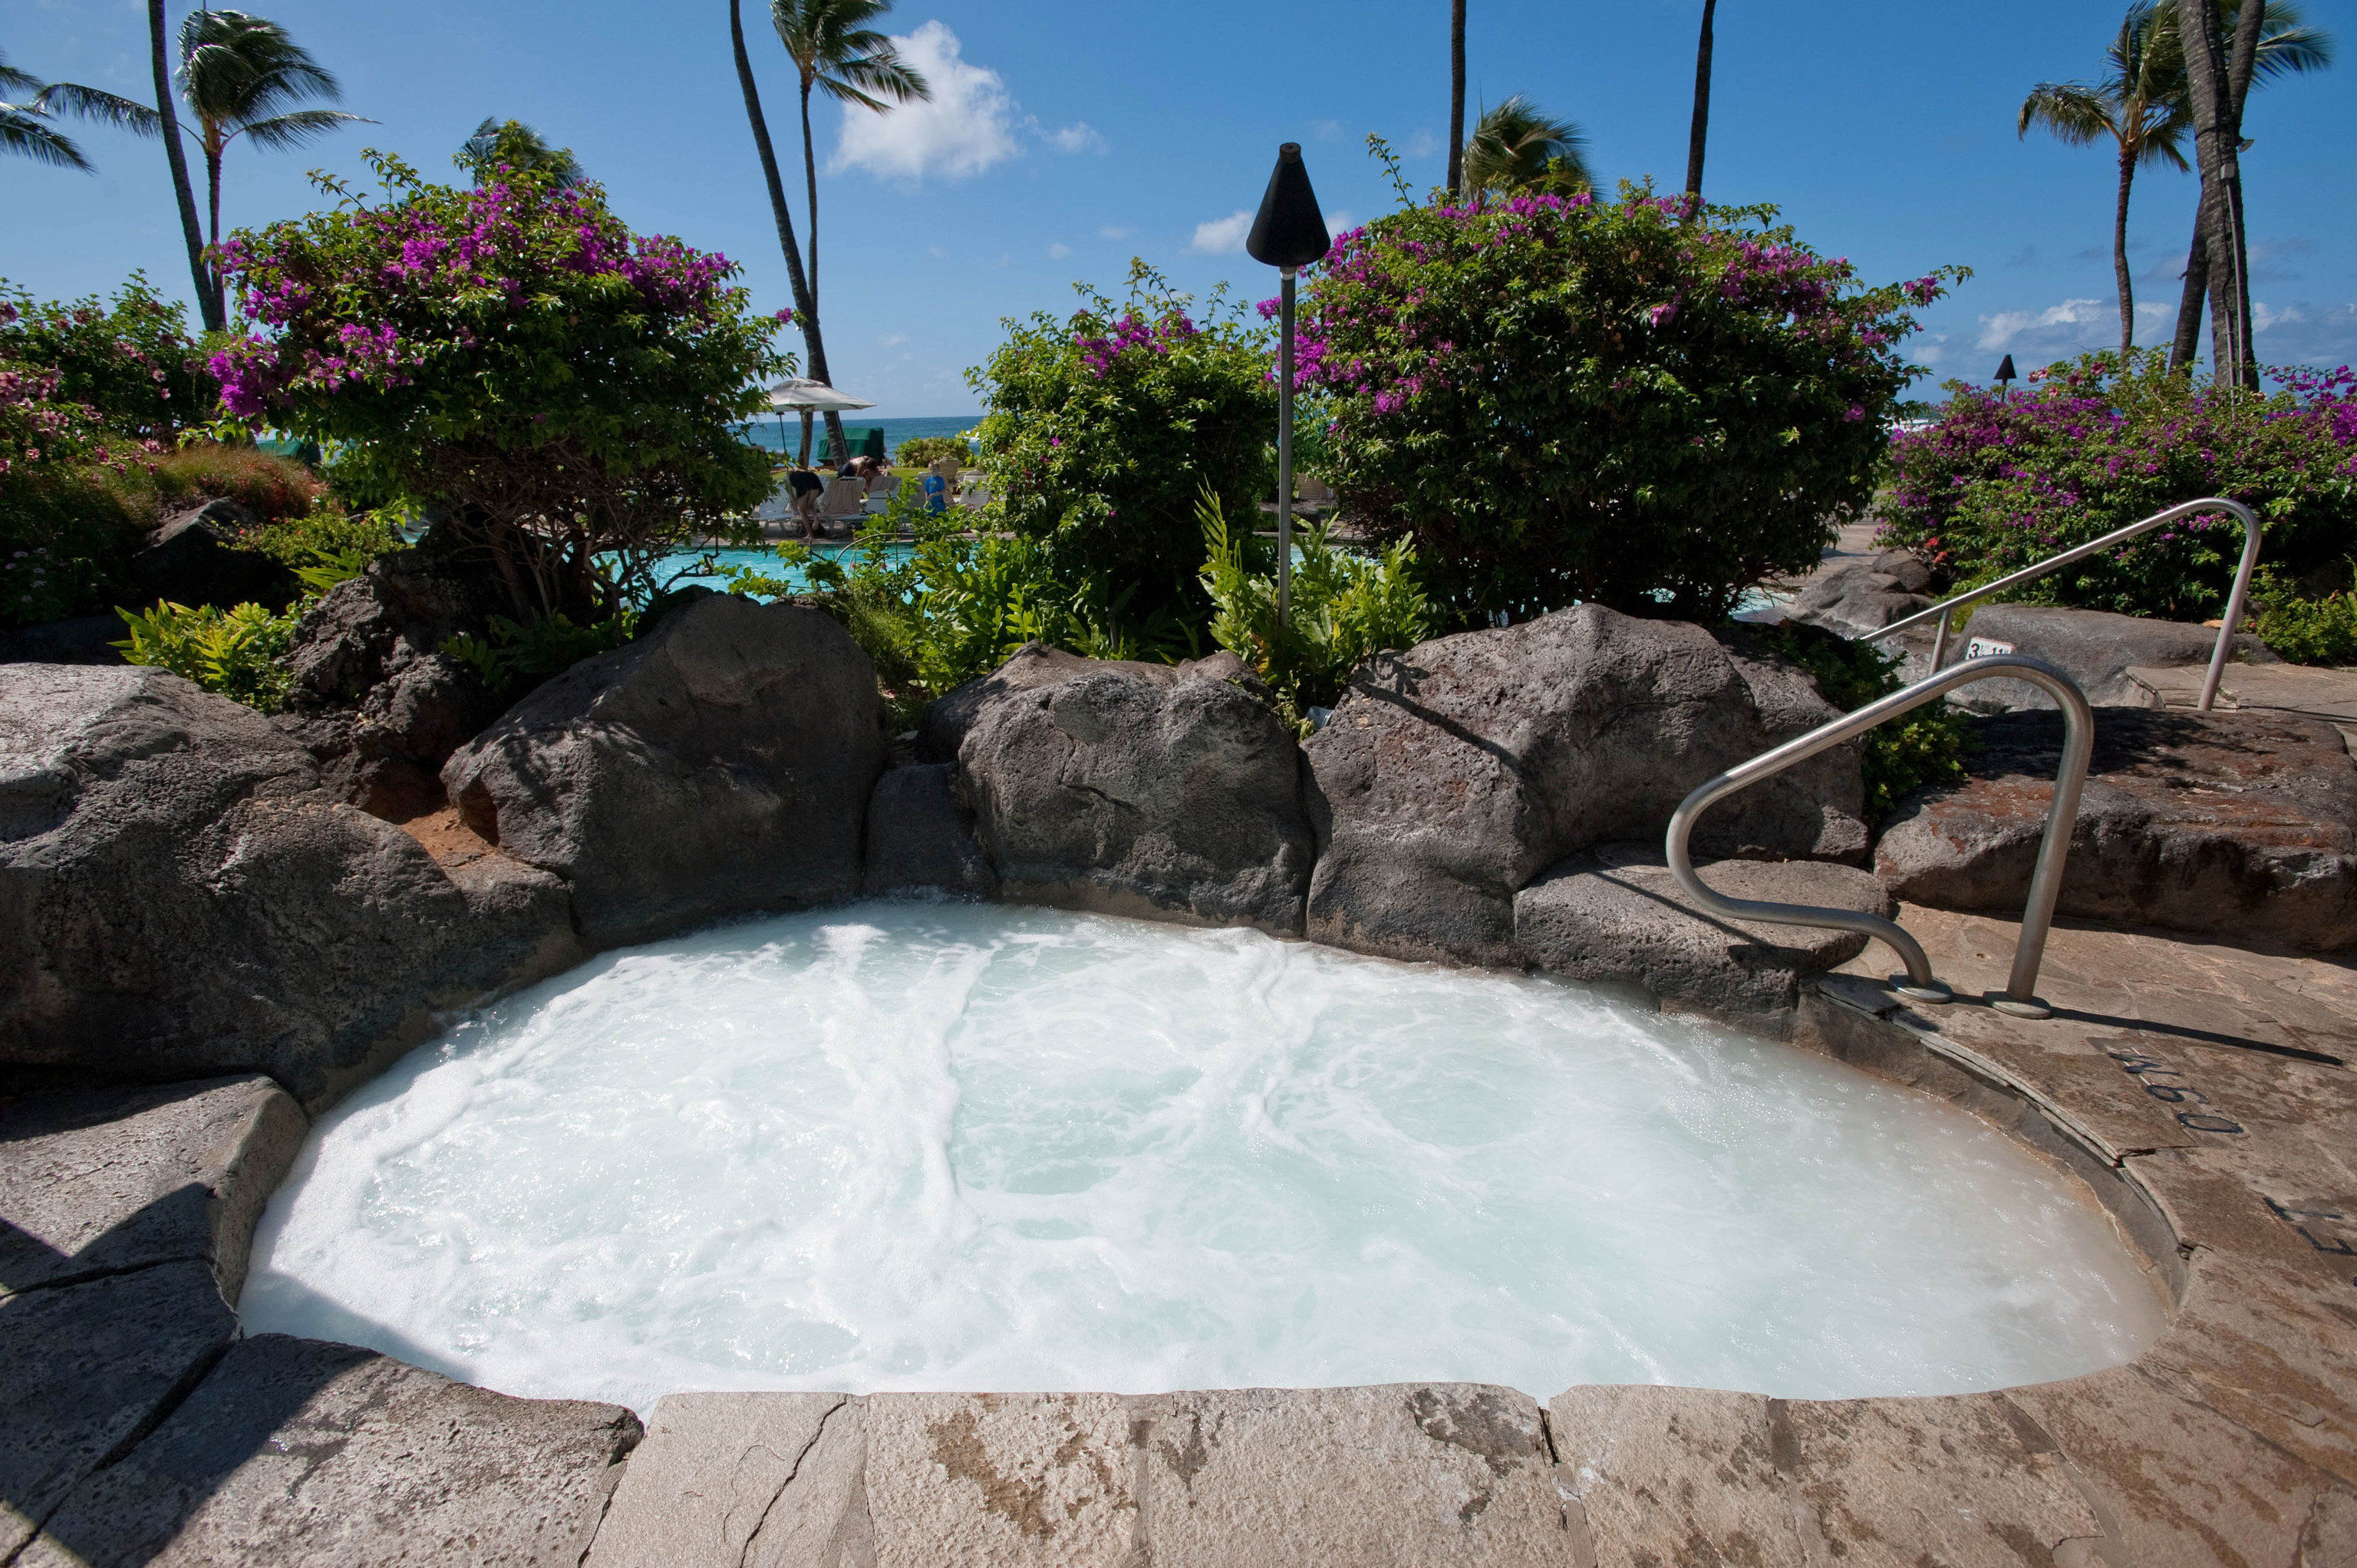 tree ground rock swimming pool property backyard pond water feature Pool Garden landscaping stone